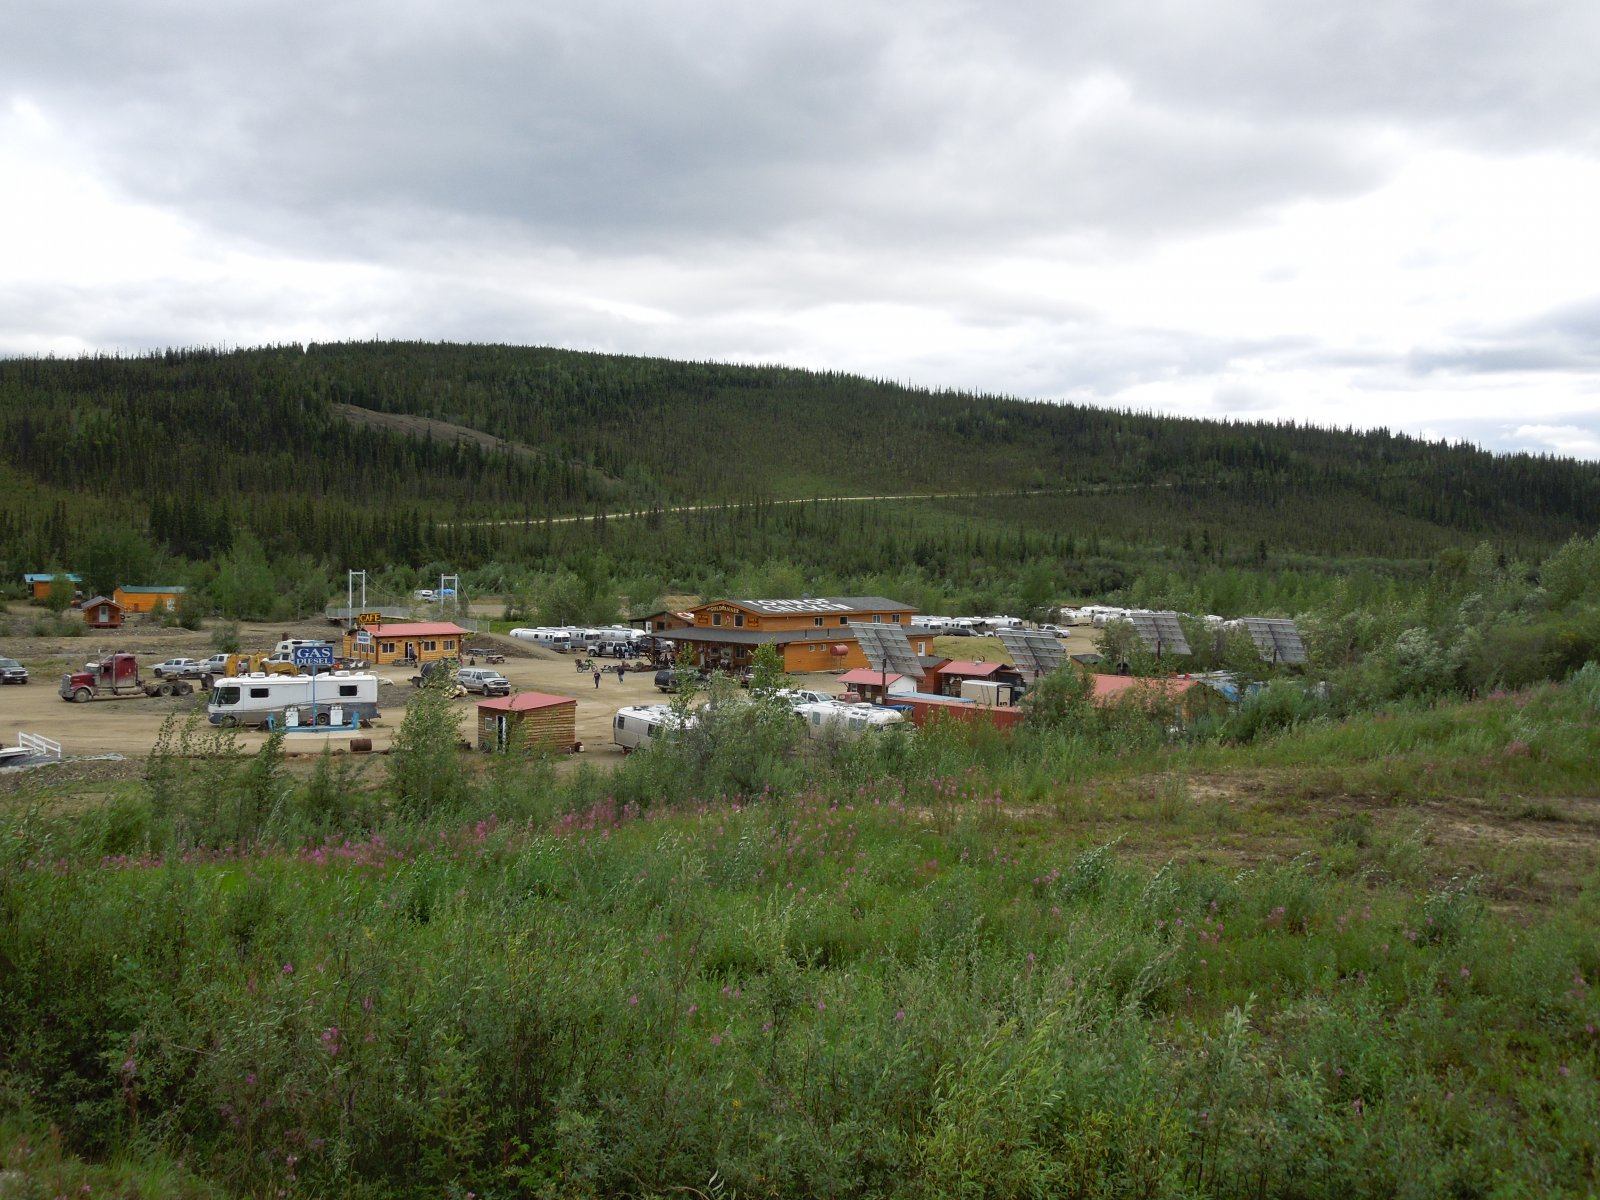 Click image for larger version  Name:Tok to Chicken to Dawson City 028.jpg Views:69 Size:377.4 KB ID:221577